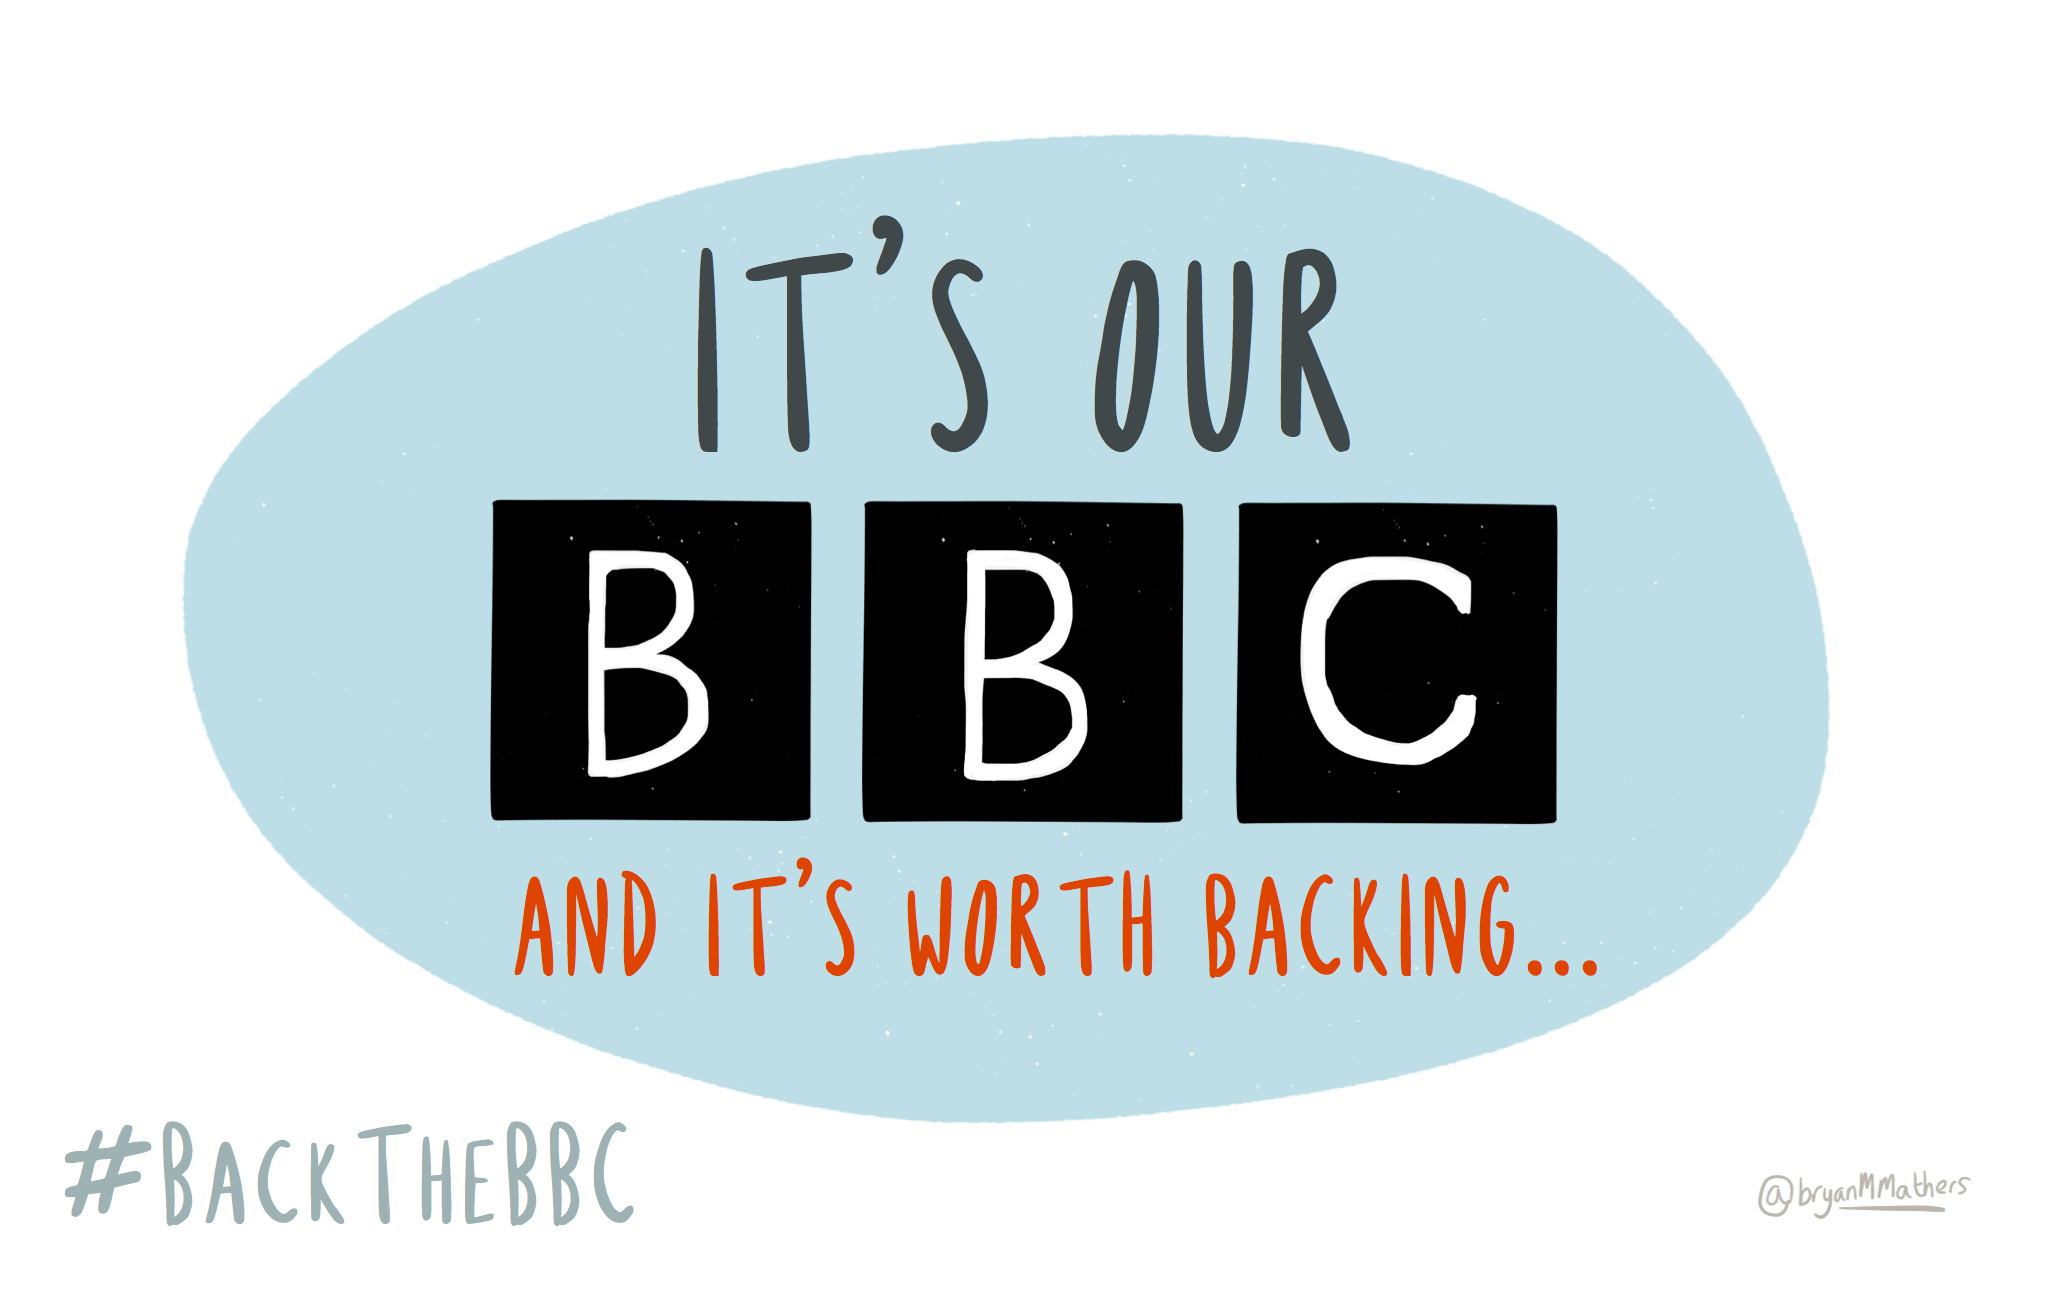 It's our BBC…